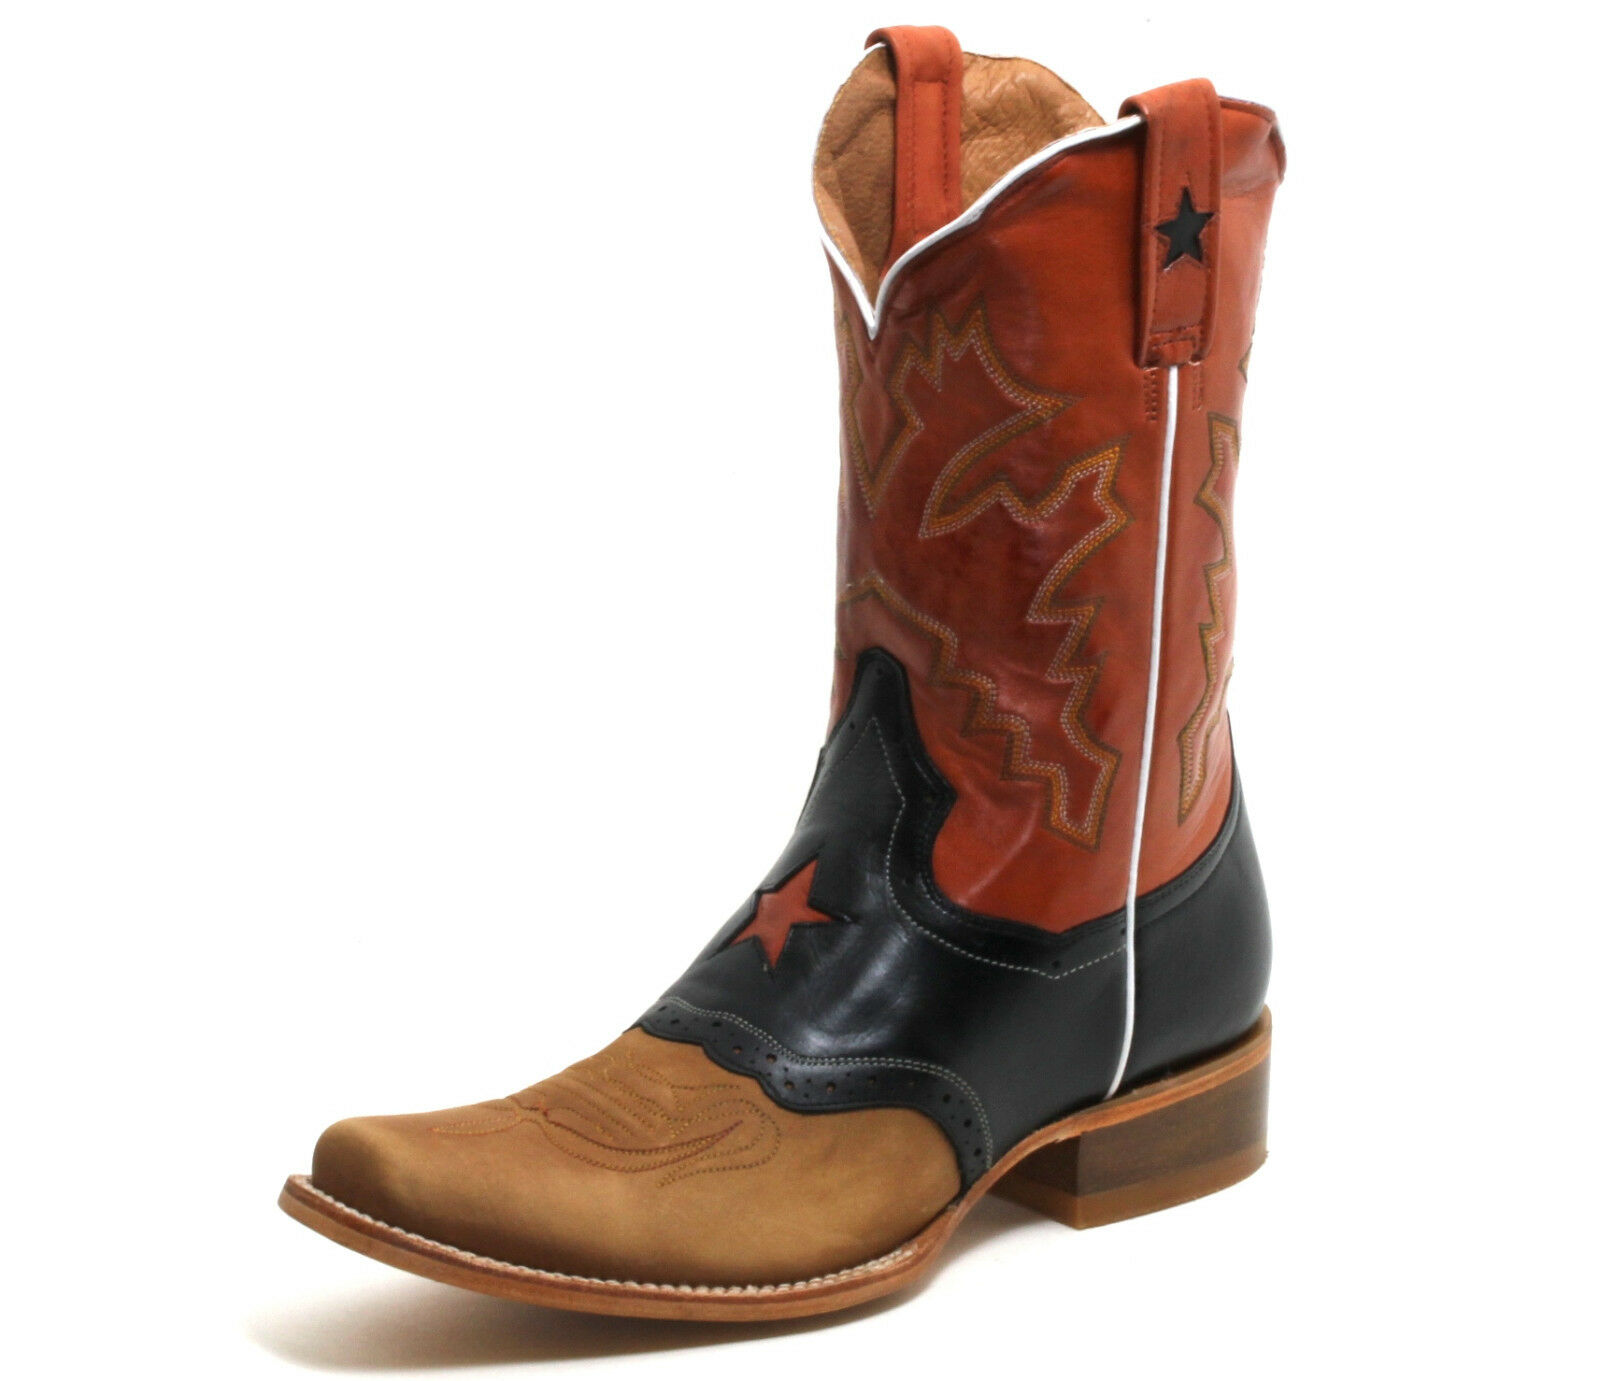 157 Cowboy Boots Western Boots Westernreitstiefel Western Riding Boots Texas 47